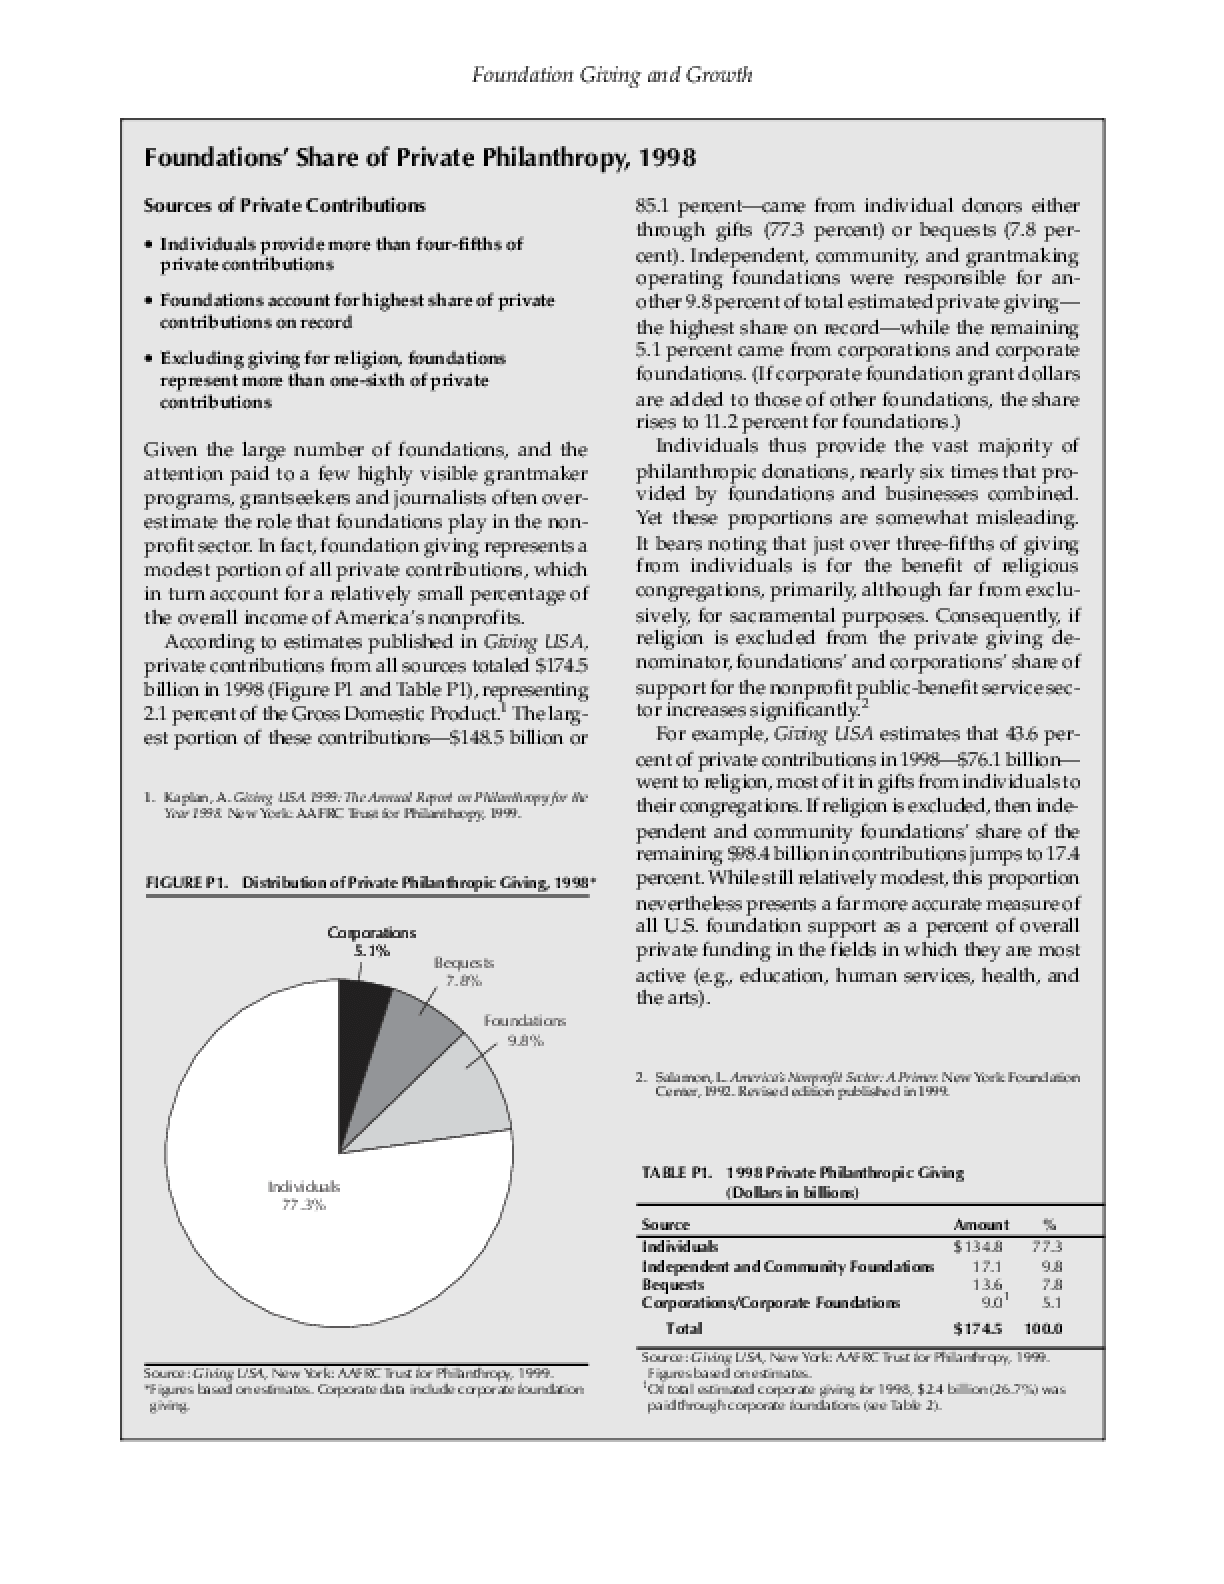 Foundation Giving and Growth: Foundations' Share of Private Philanthropy, 1998